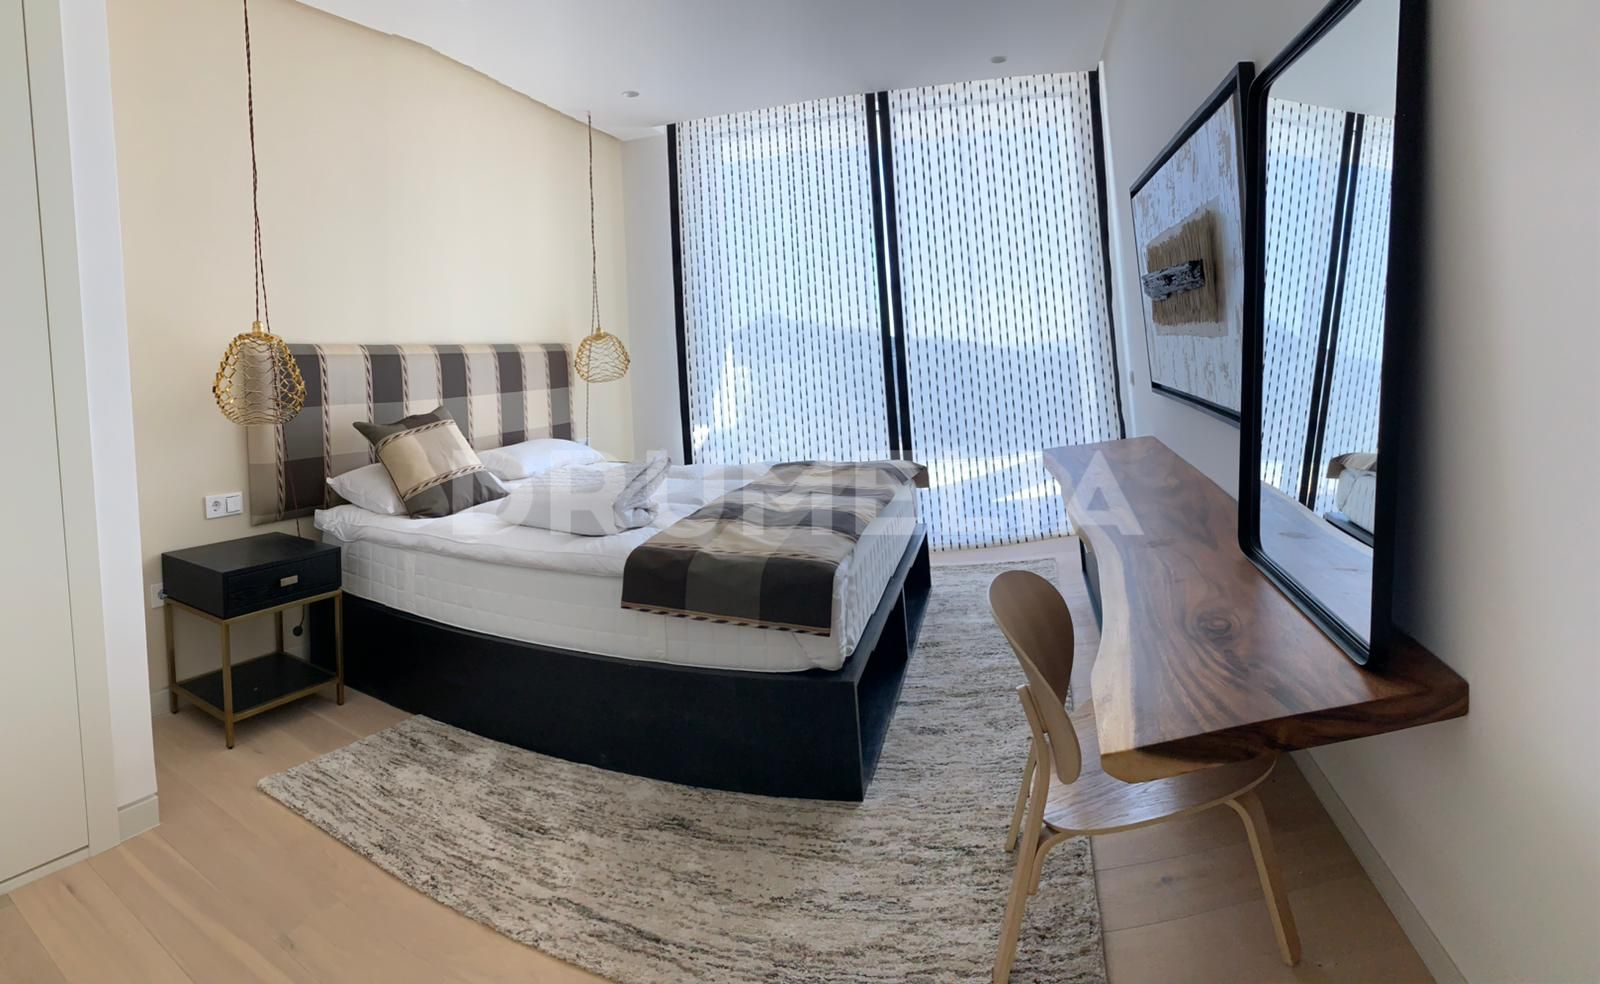 Ojen, New Modern  Elegant Apartment in Palo Alto, Ojen-Marbella (Turnkey Project)